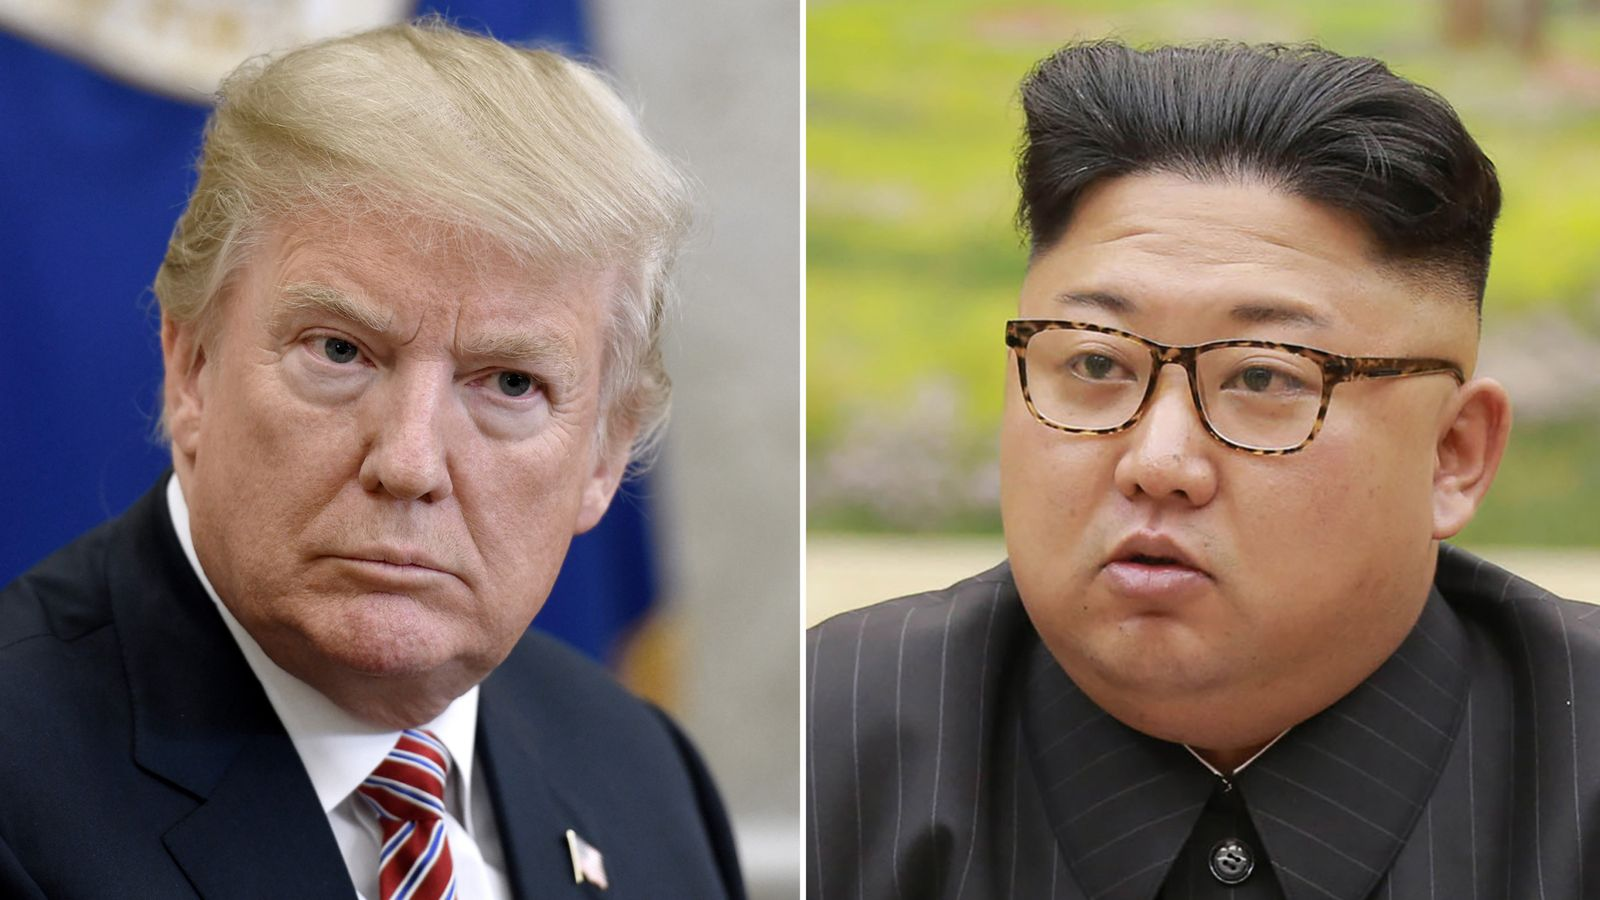 Trump: We'll have to see if N Korea summit still on